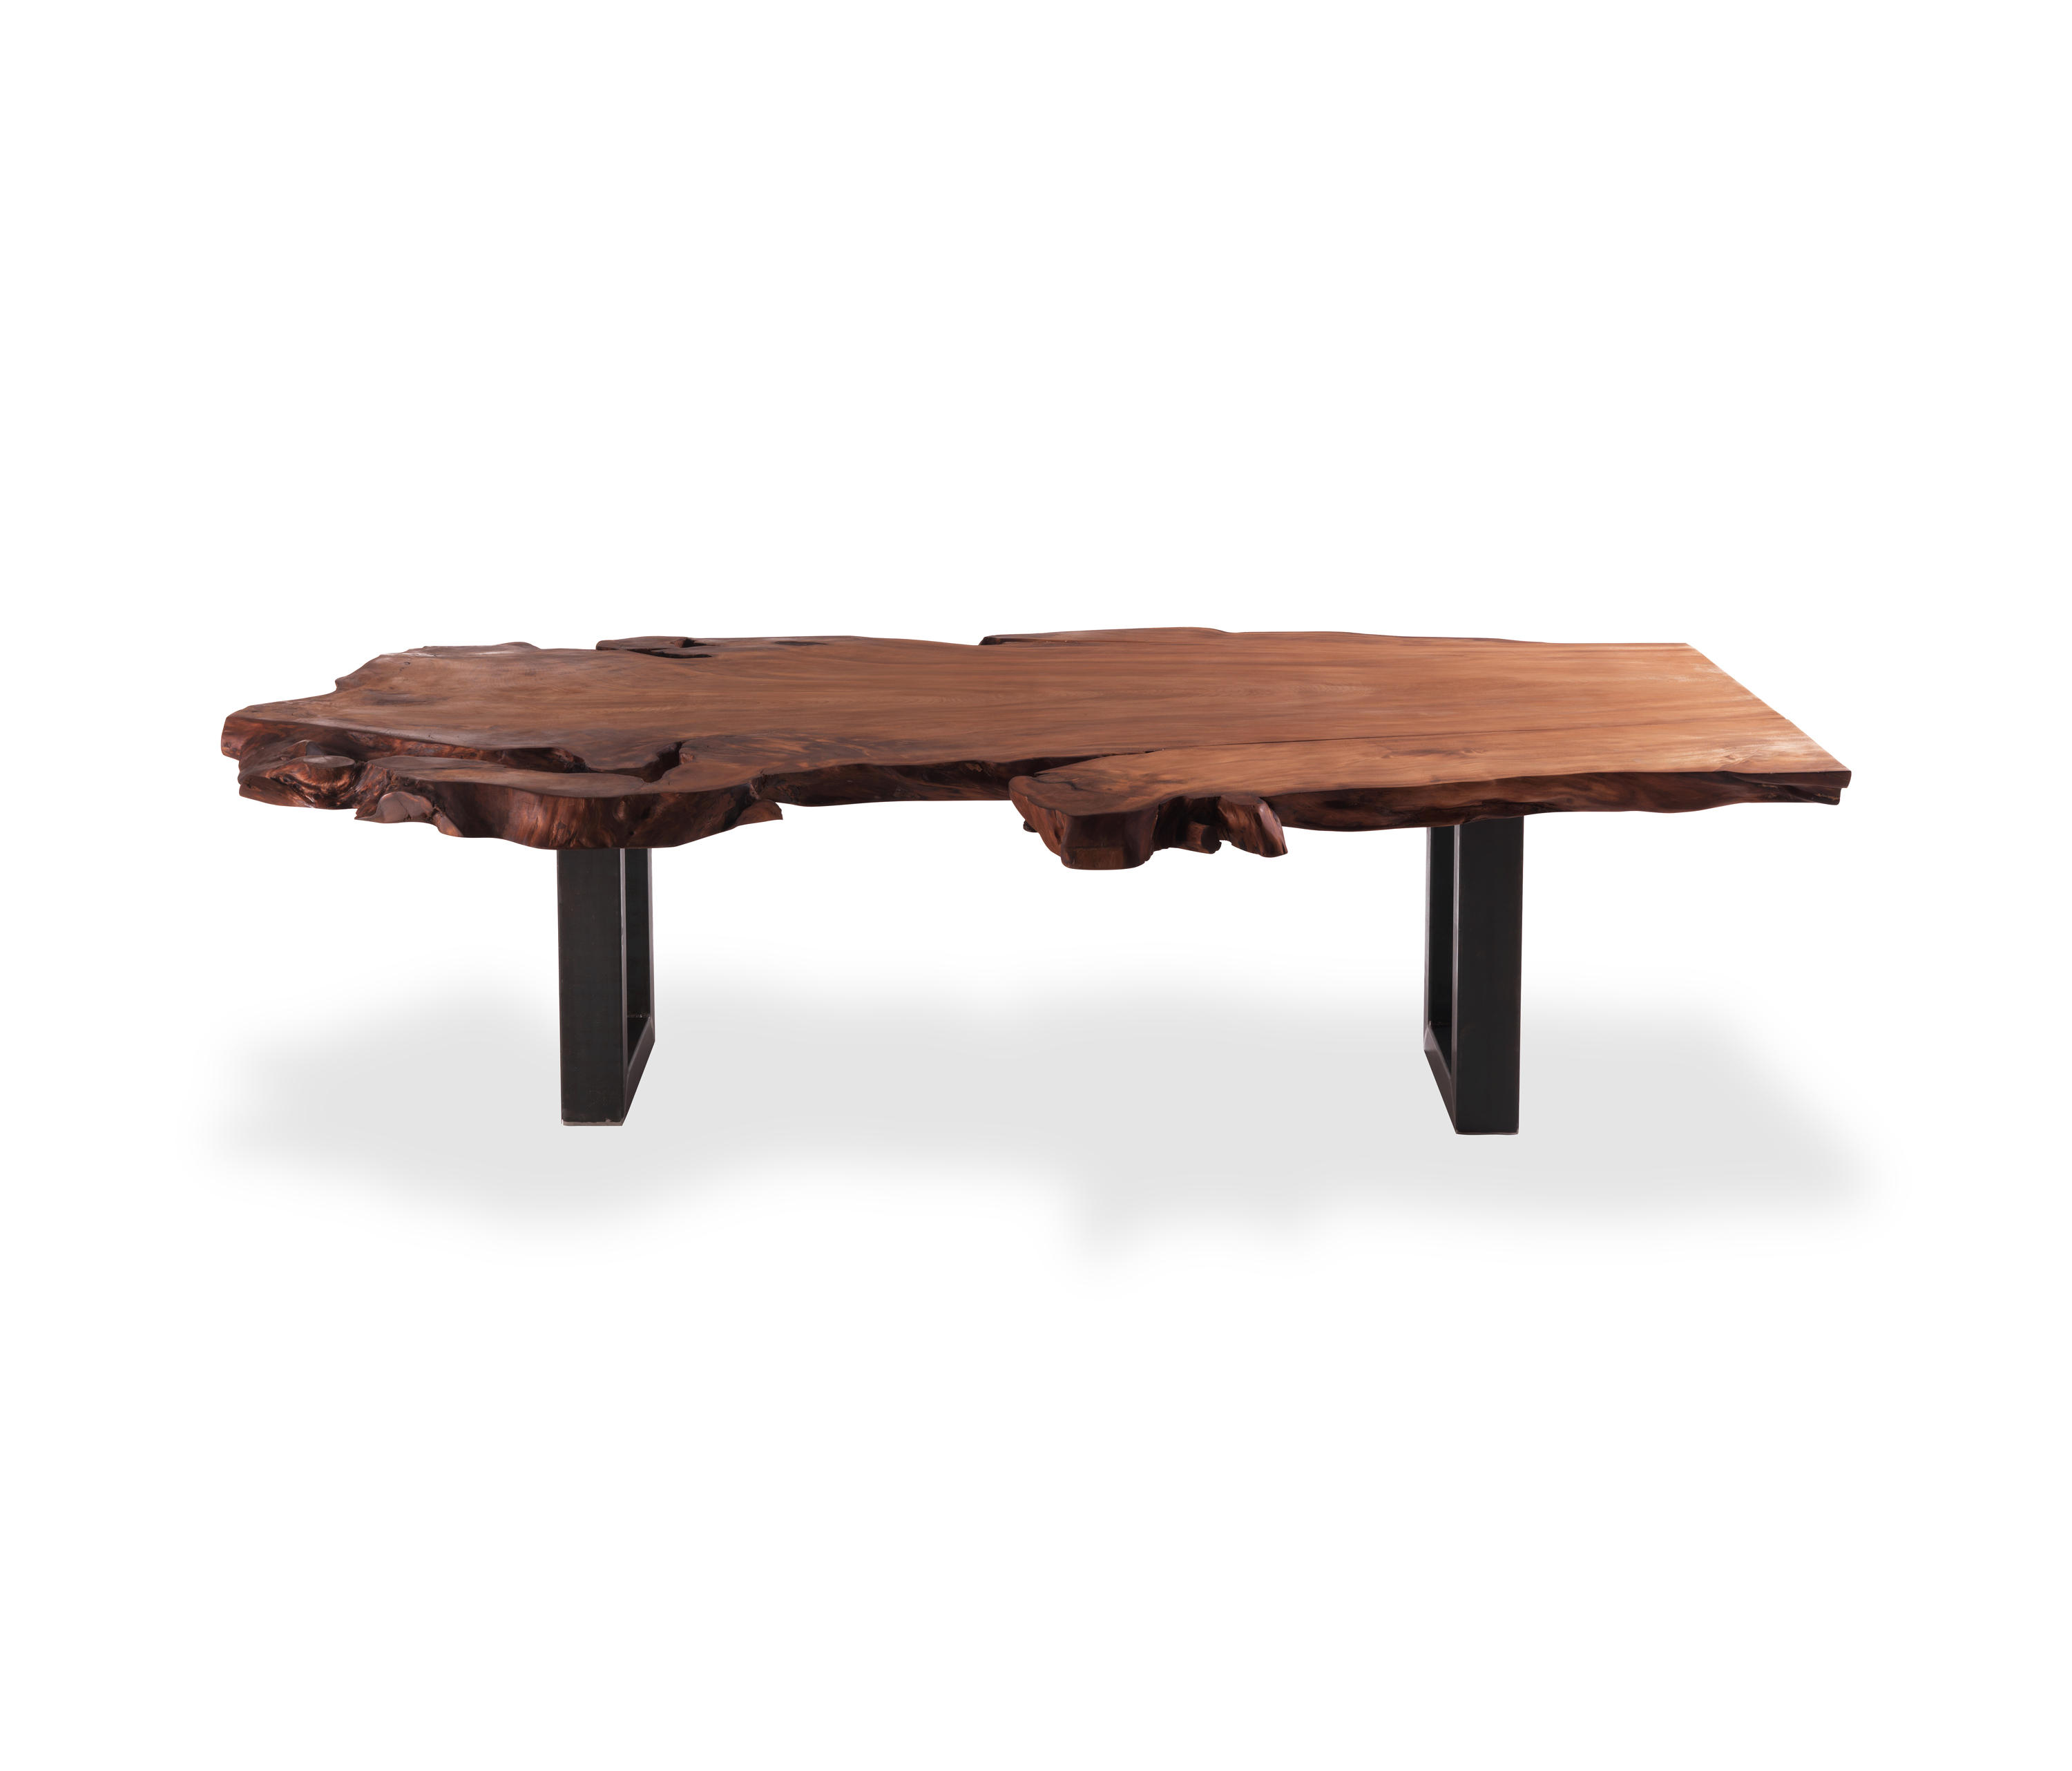 ... Kauri Auckland By Riva 1920 | Dining Tables